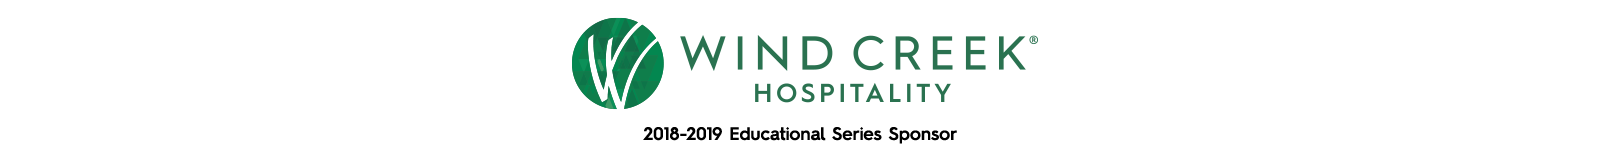 Many thanks to   Wind Creek Hospitality   for being our educational sponsor. Because of your sponsorship we've learned how to communicate with passion to affect change in our communities. We now have a better understanding of how to build better relationships, organize finance committees, host profitable events, and best practices for political and non-profit fundraisers.